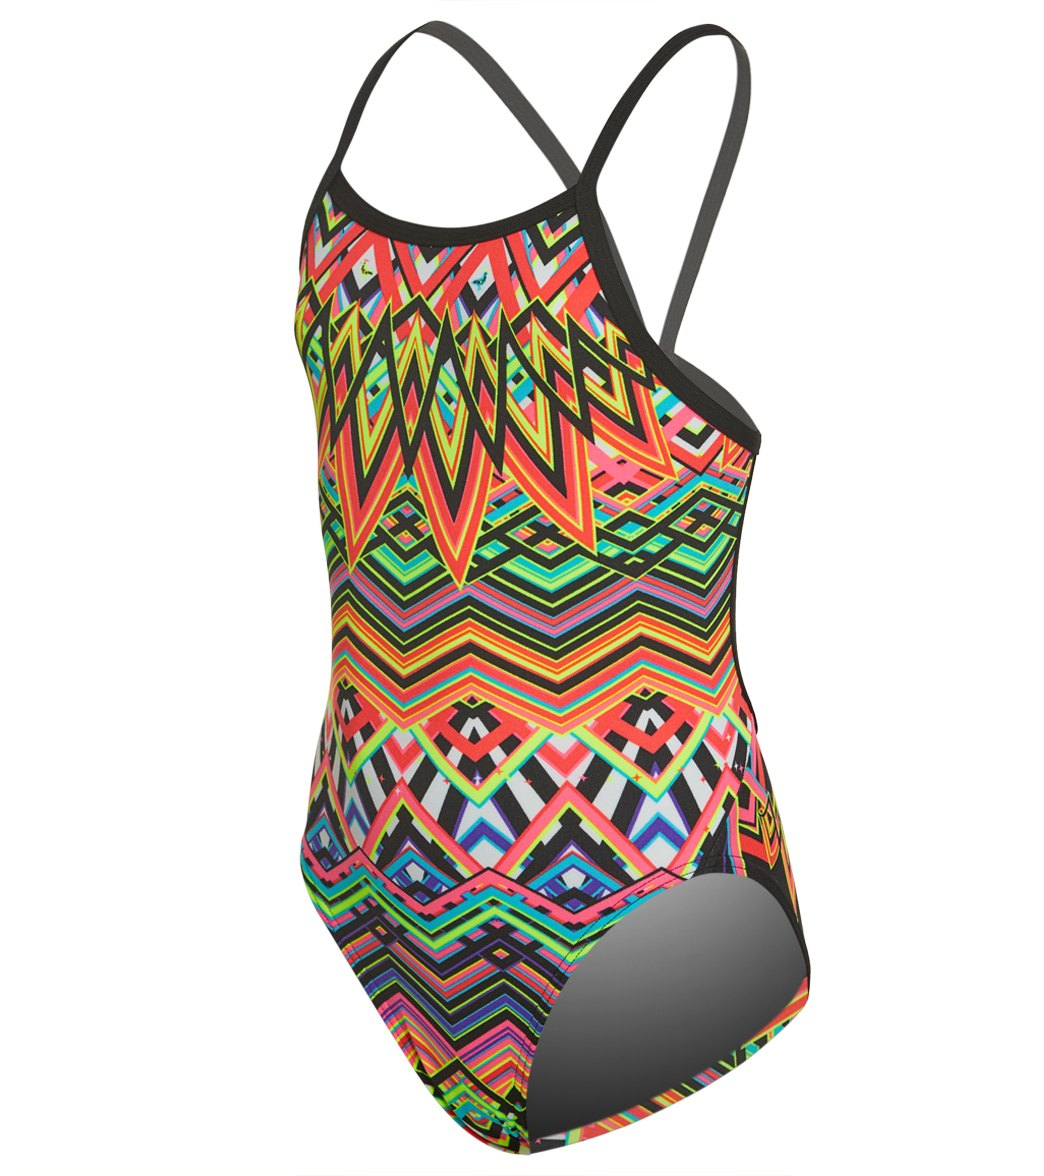 9a33971df9a89 Funkita Girls' Go Safari Single Strap One Piece Swimsuit at SwimOutlet.com  - Free Shipping